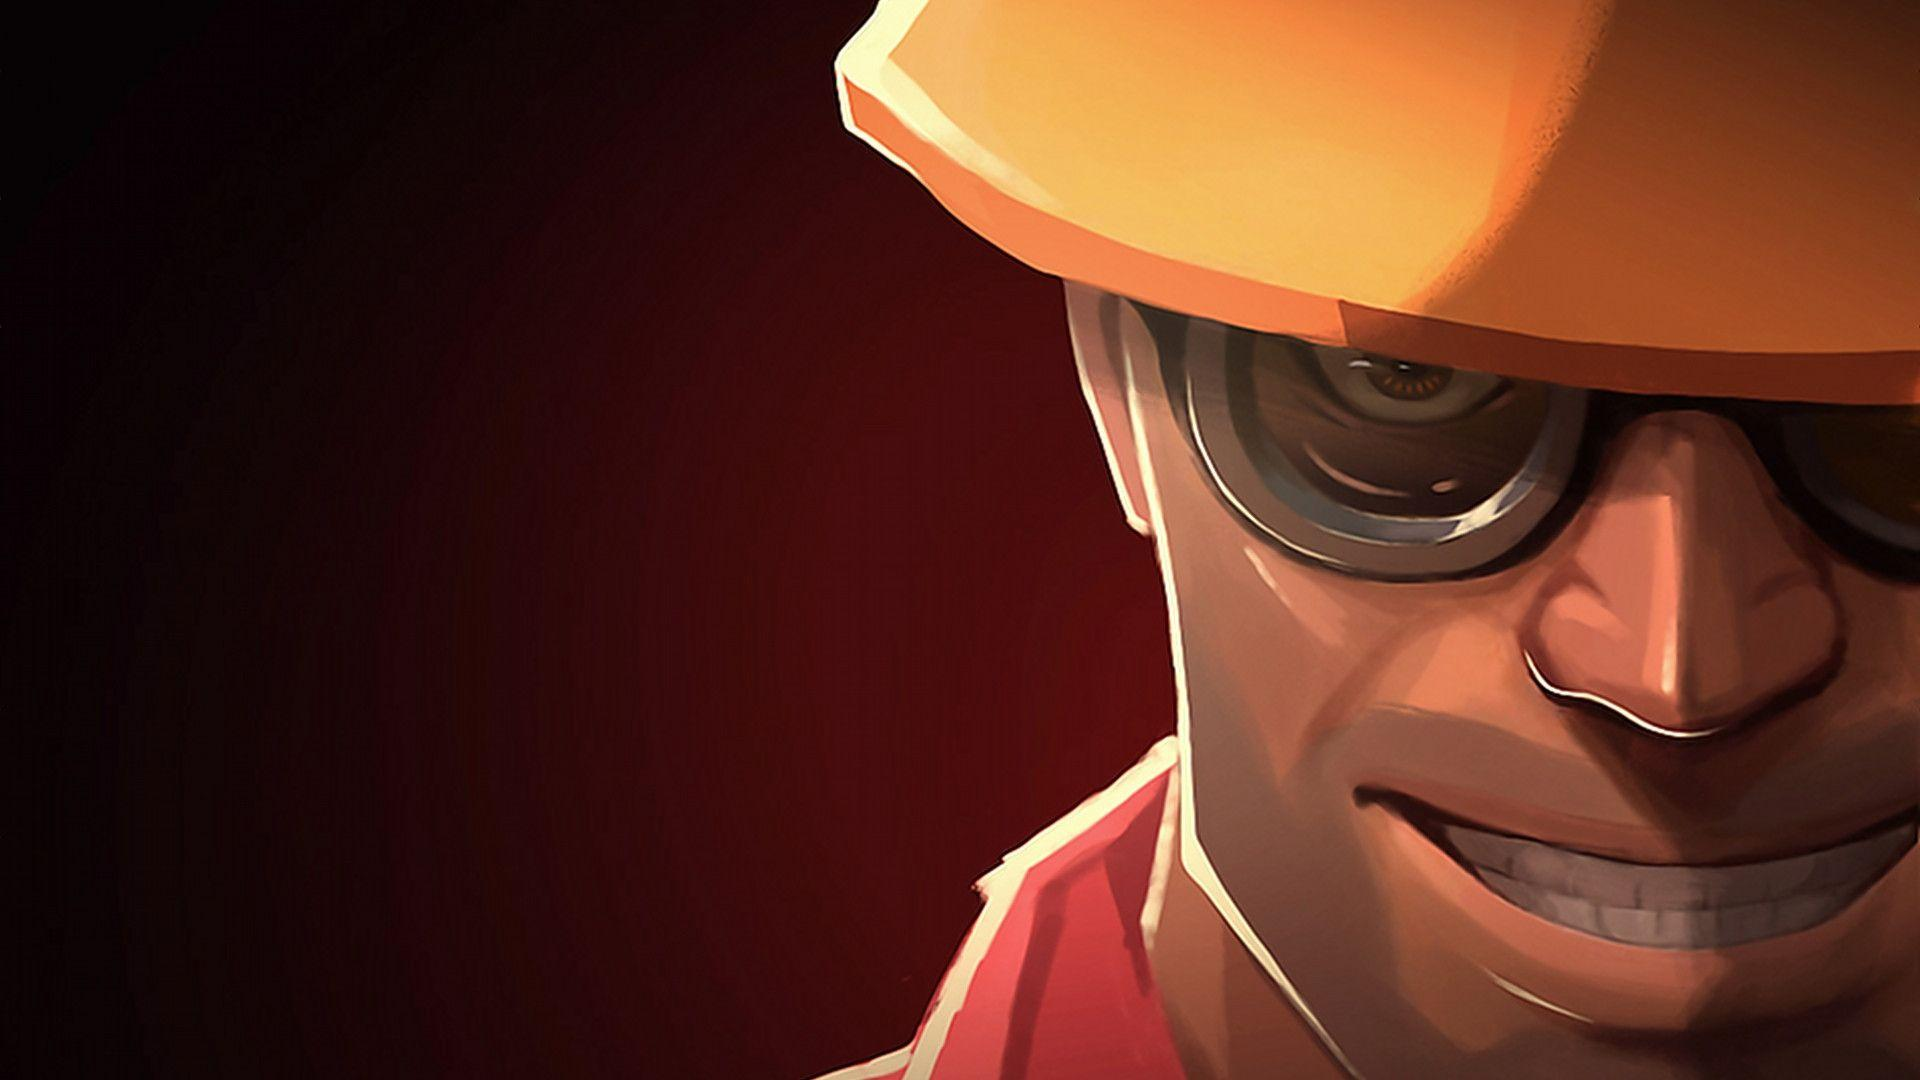 258 Team Fortress 2 Wallpapers